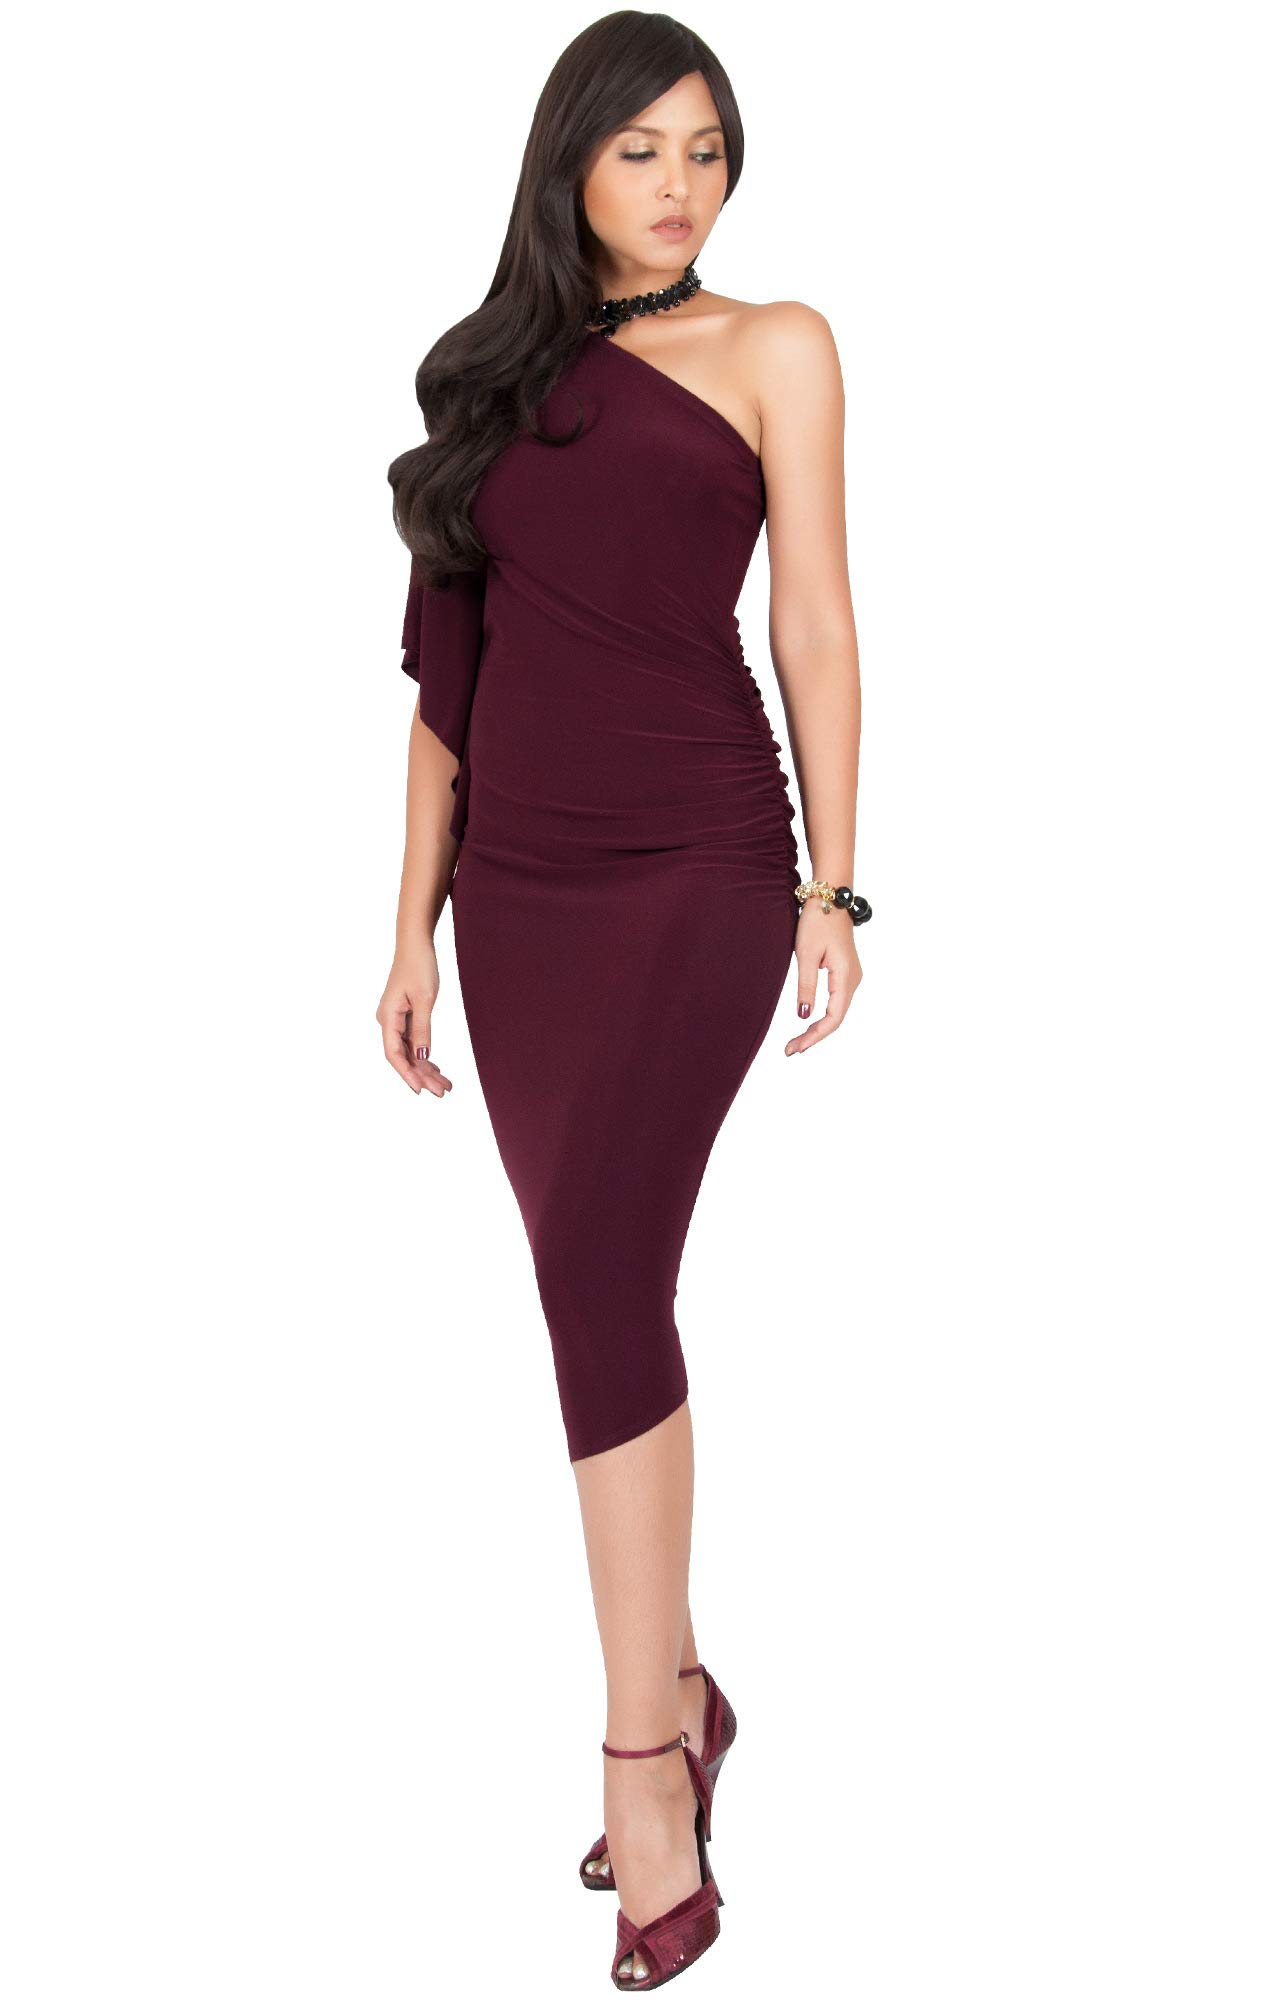 c7449f692002 KOH KOH Plus Size Womens One Off The Shoulder Sexy Long Formal Cocktail  Bridesmaid Evening Elegant Wedding Guest Night Party Summer Sun Midi Dress  Dresses ...